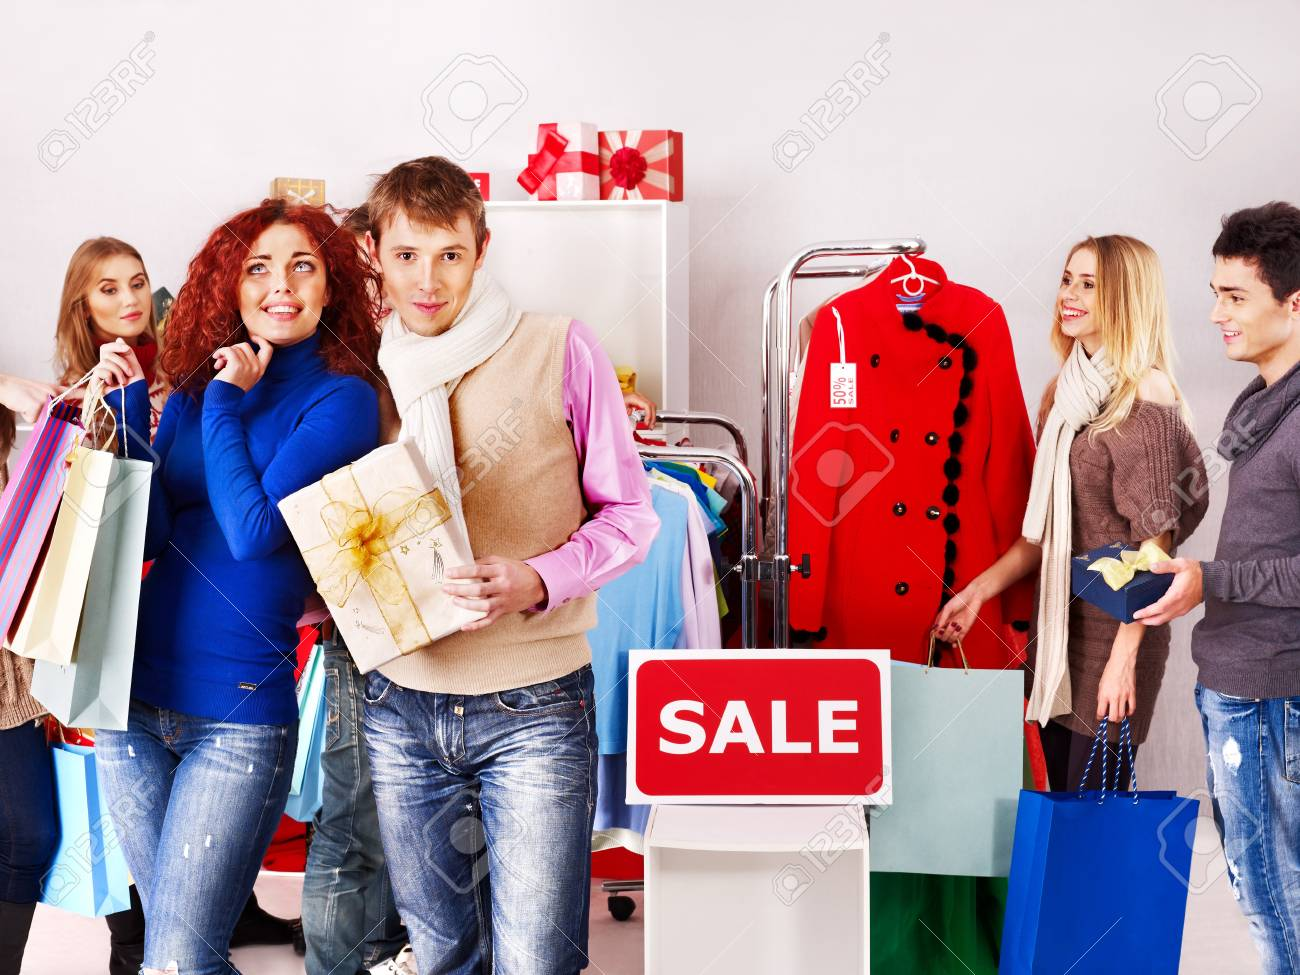 ccf16c99b4 Shopping group people at sales in clothing store. Stock Photo - 21733956